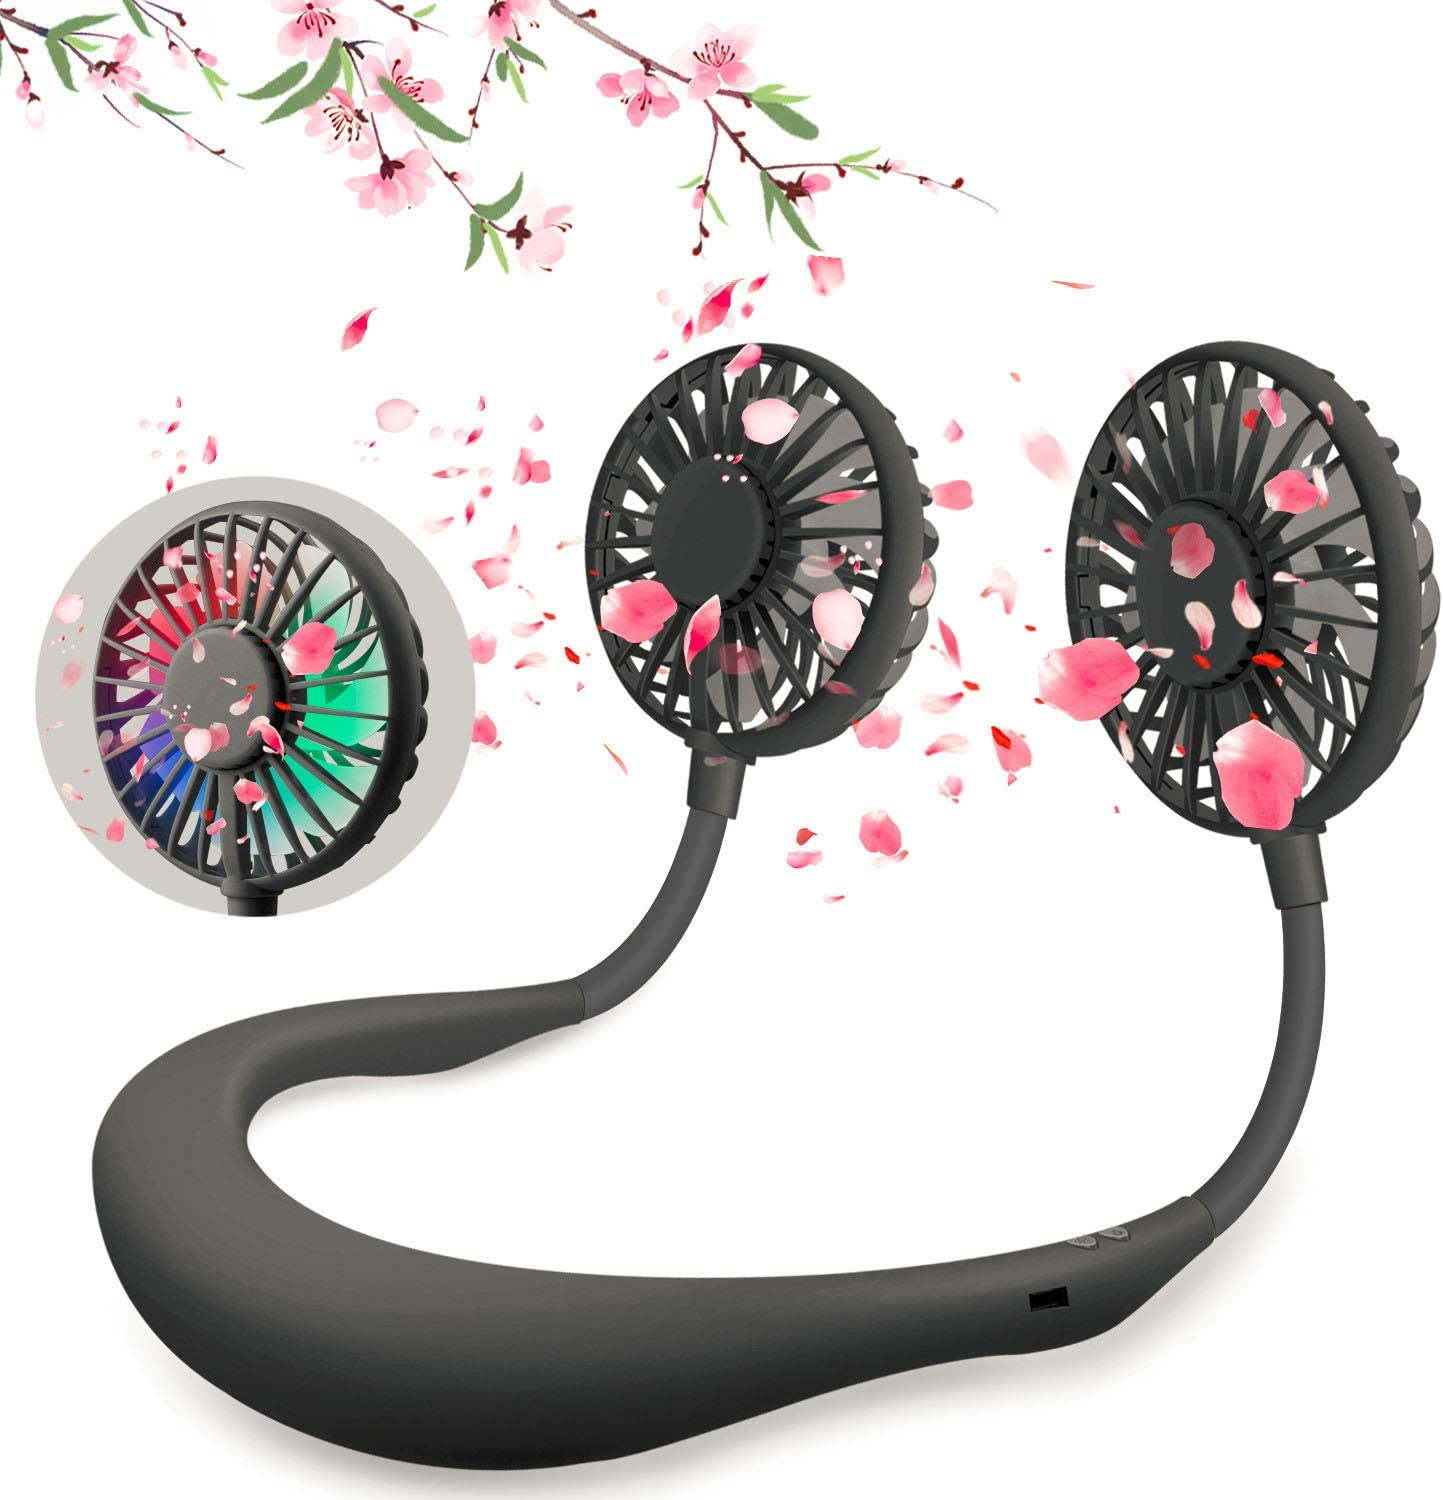 Hand Free Neck Fan, Portable Neck Fan ,2000mAh Rechargeable Battery Operated & 3 Speeds Personal Electric Wearable Fan with Colorful Led Light for Home, Office, Travel, Sport, Outdoor(Black)